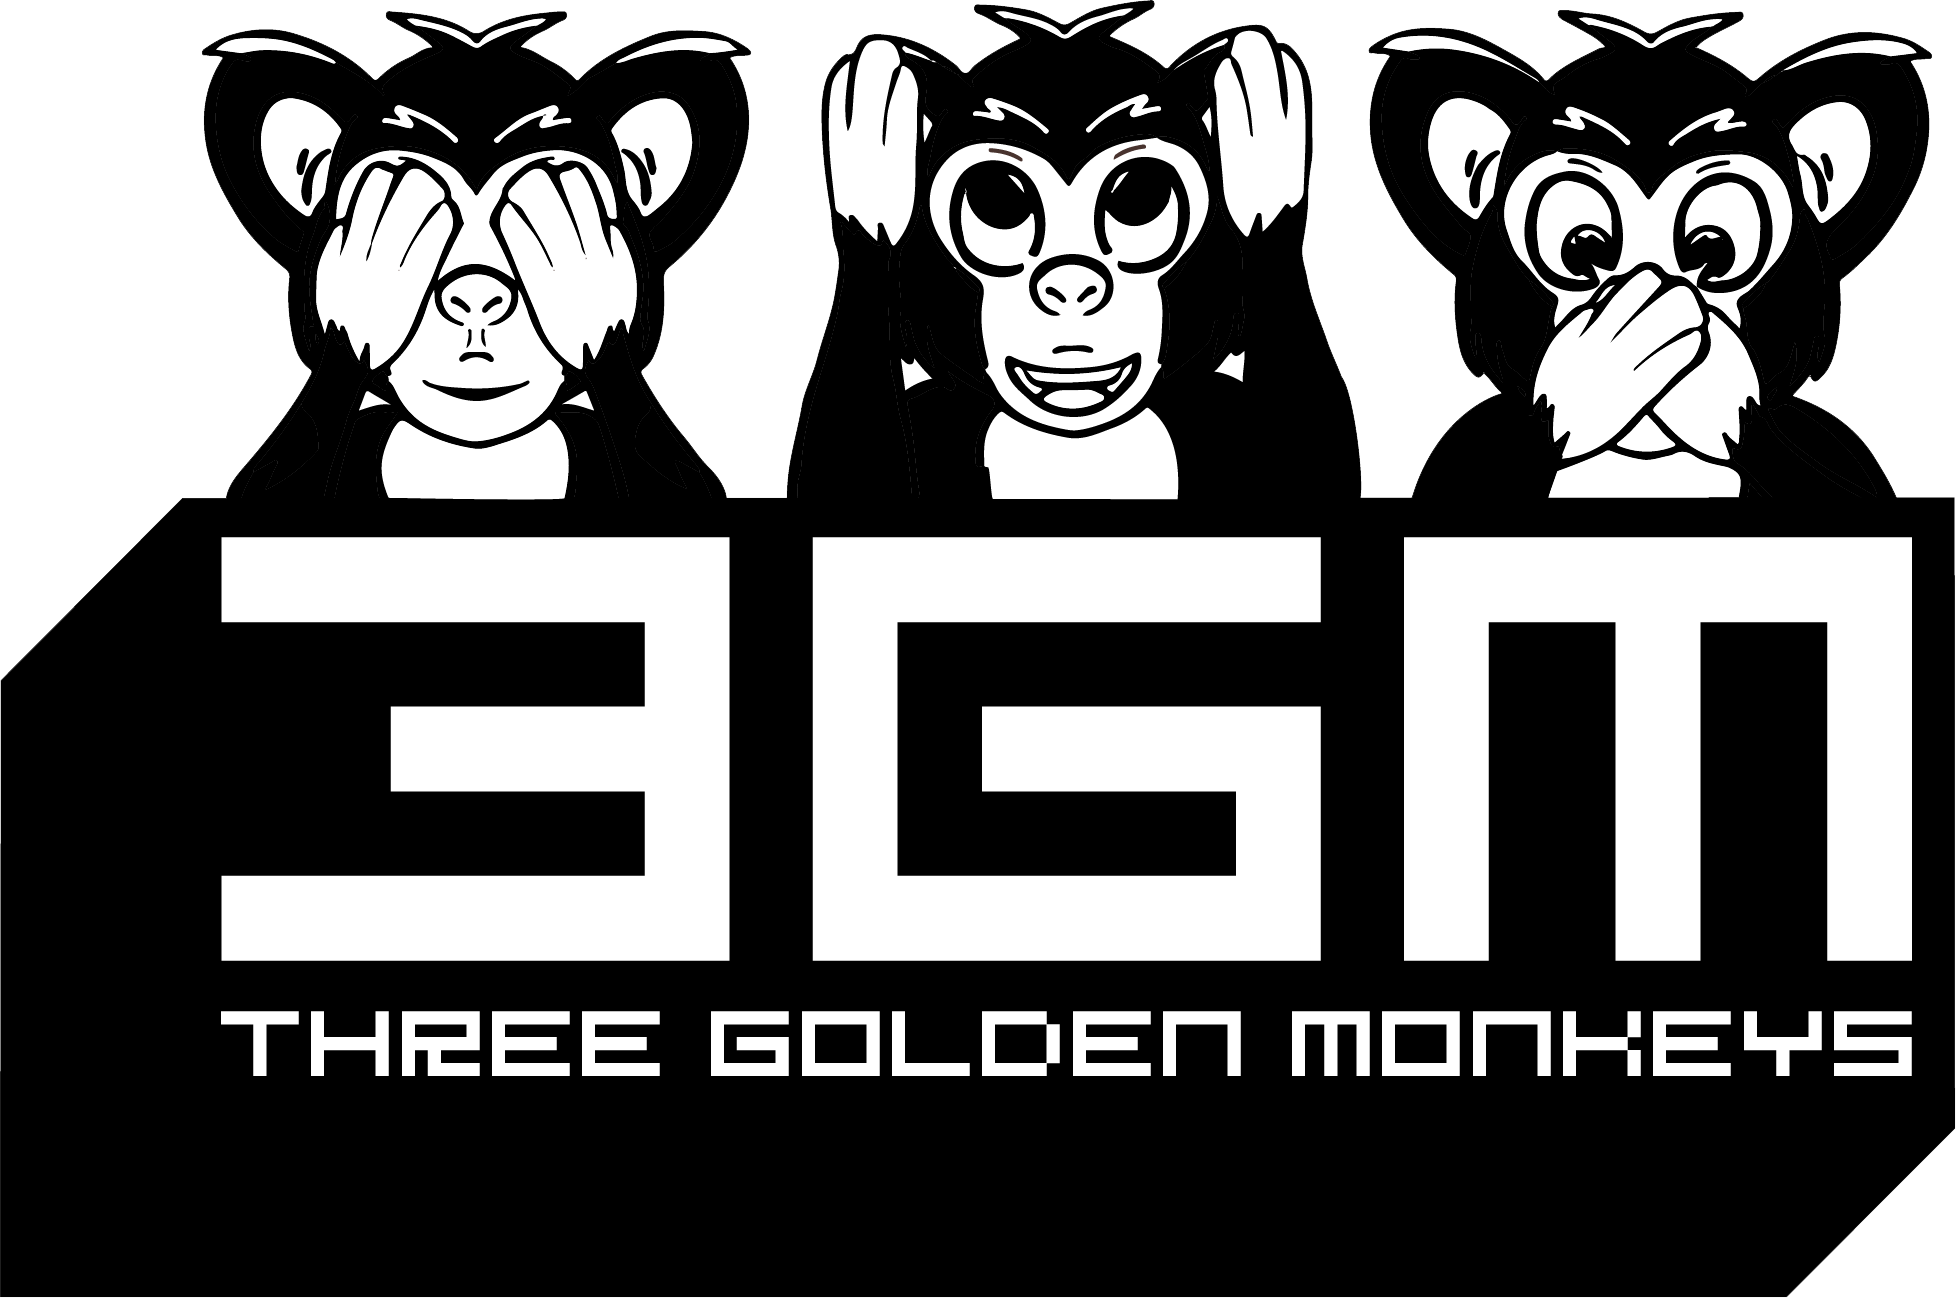 Contact - Three Golden Monkeys Lab